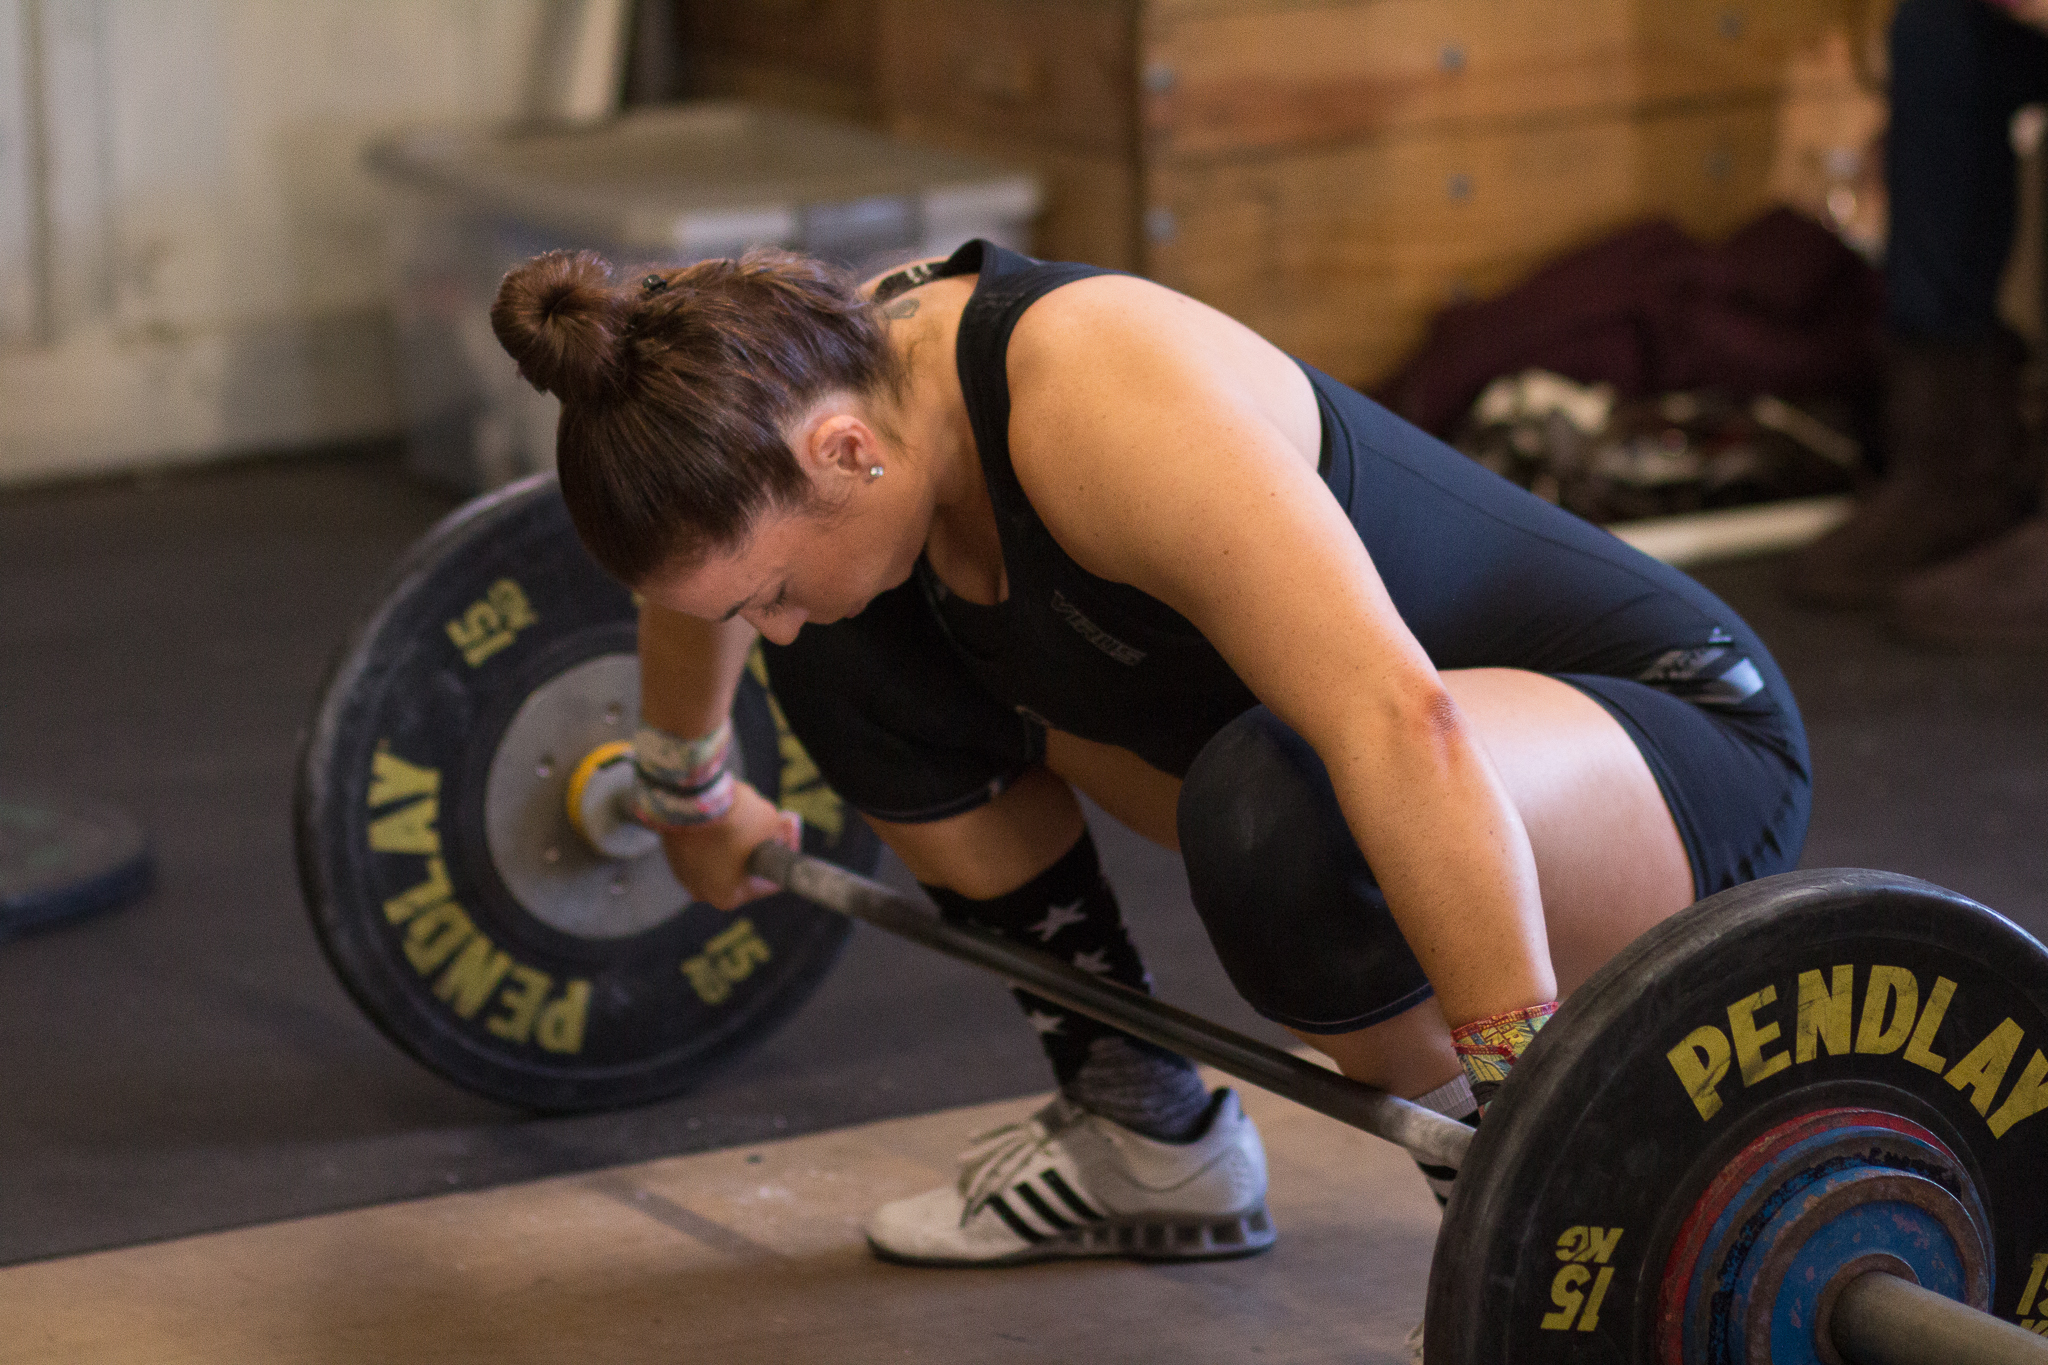 warwick-new-york-intrepid-strength-conditioning-winter-open-weightlifting-meet-weightlifting-photography (8 of 15).jpg